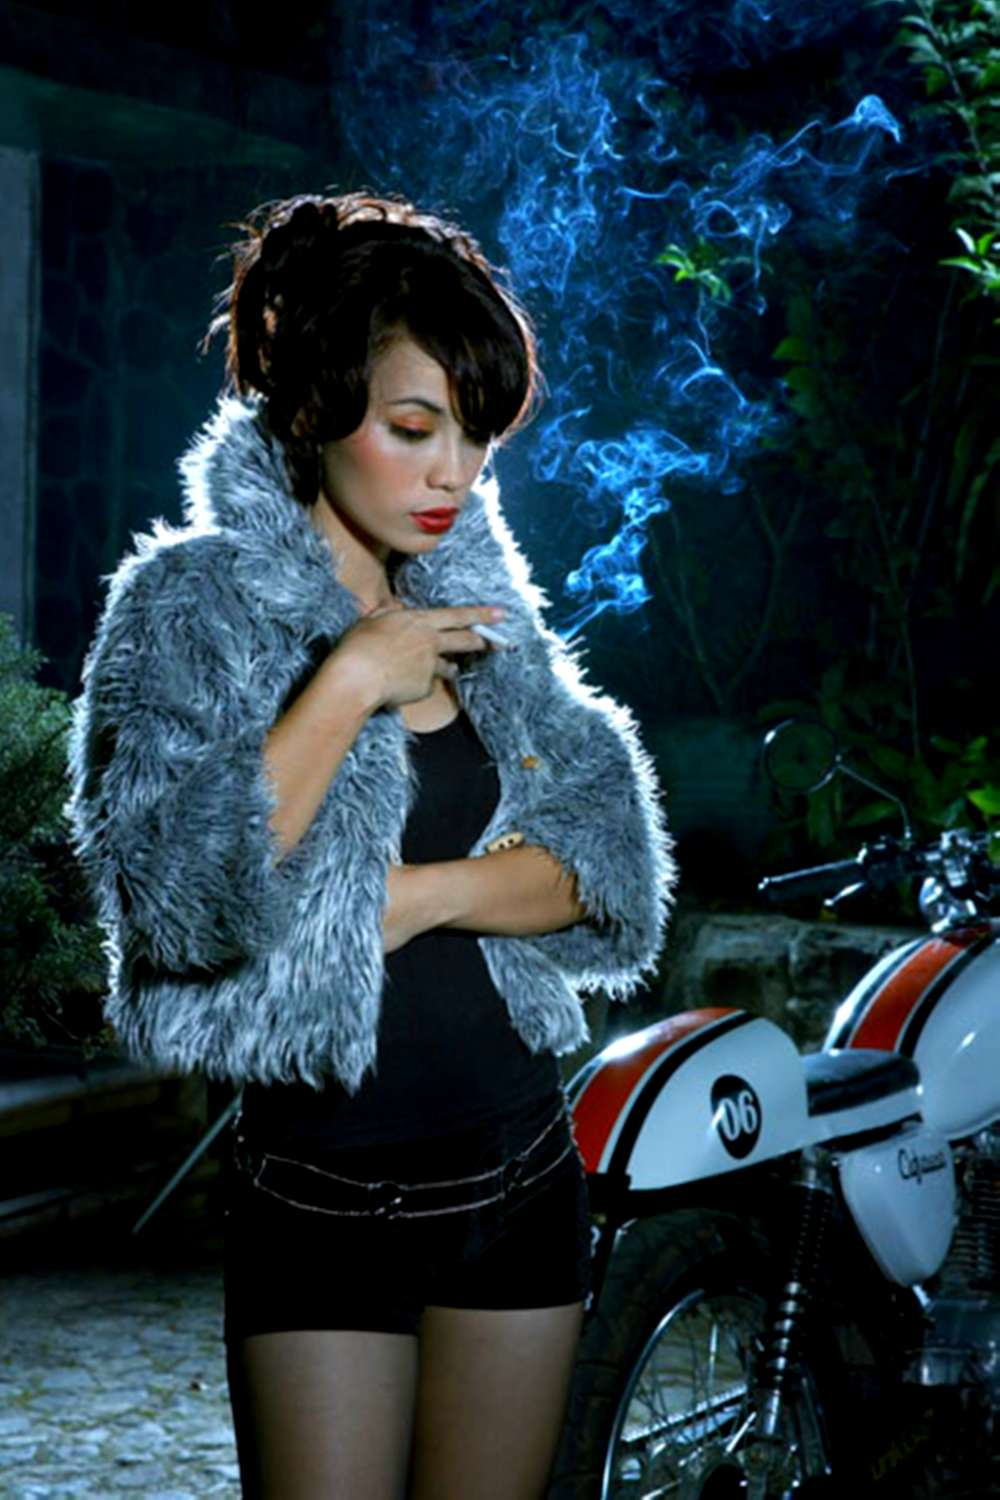 Cafe Racer Girl Wallpaper Cafe Racer Mutantmoto